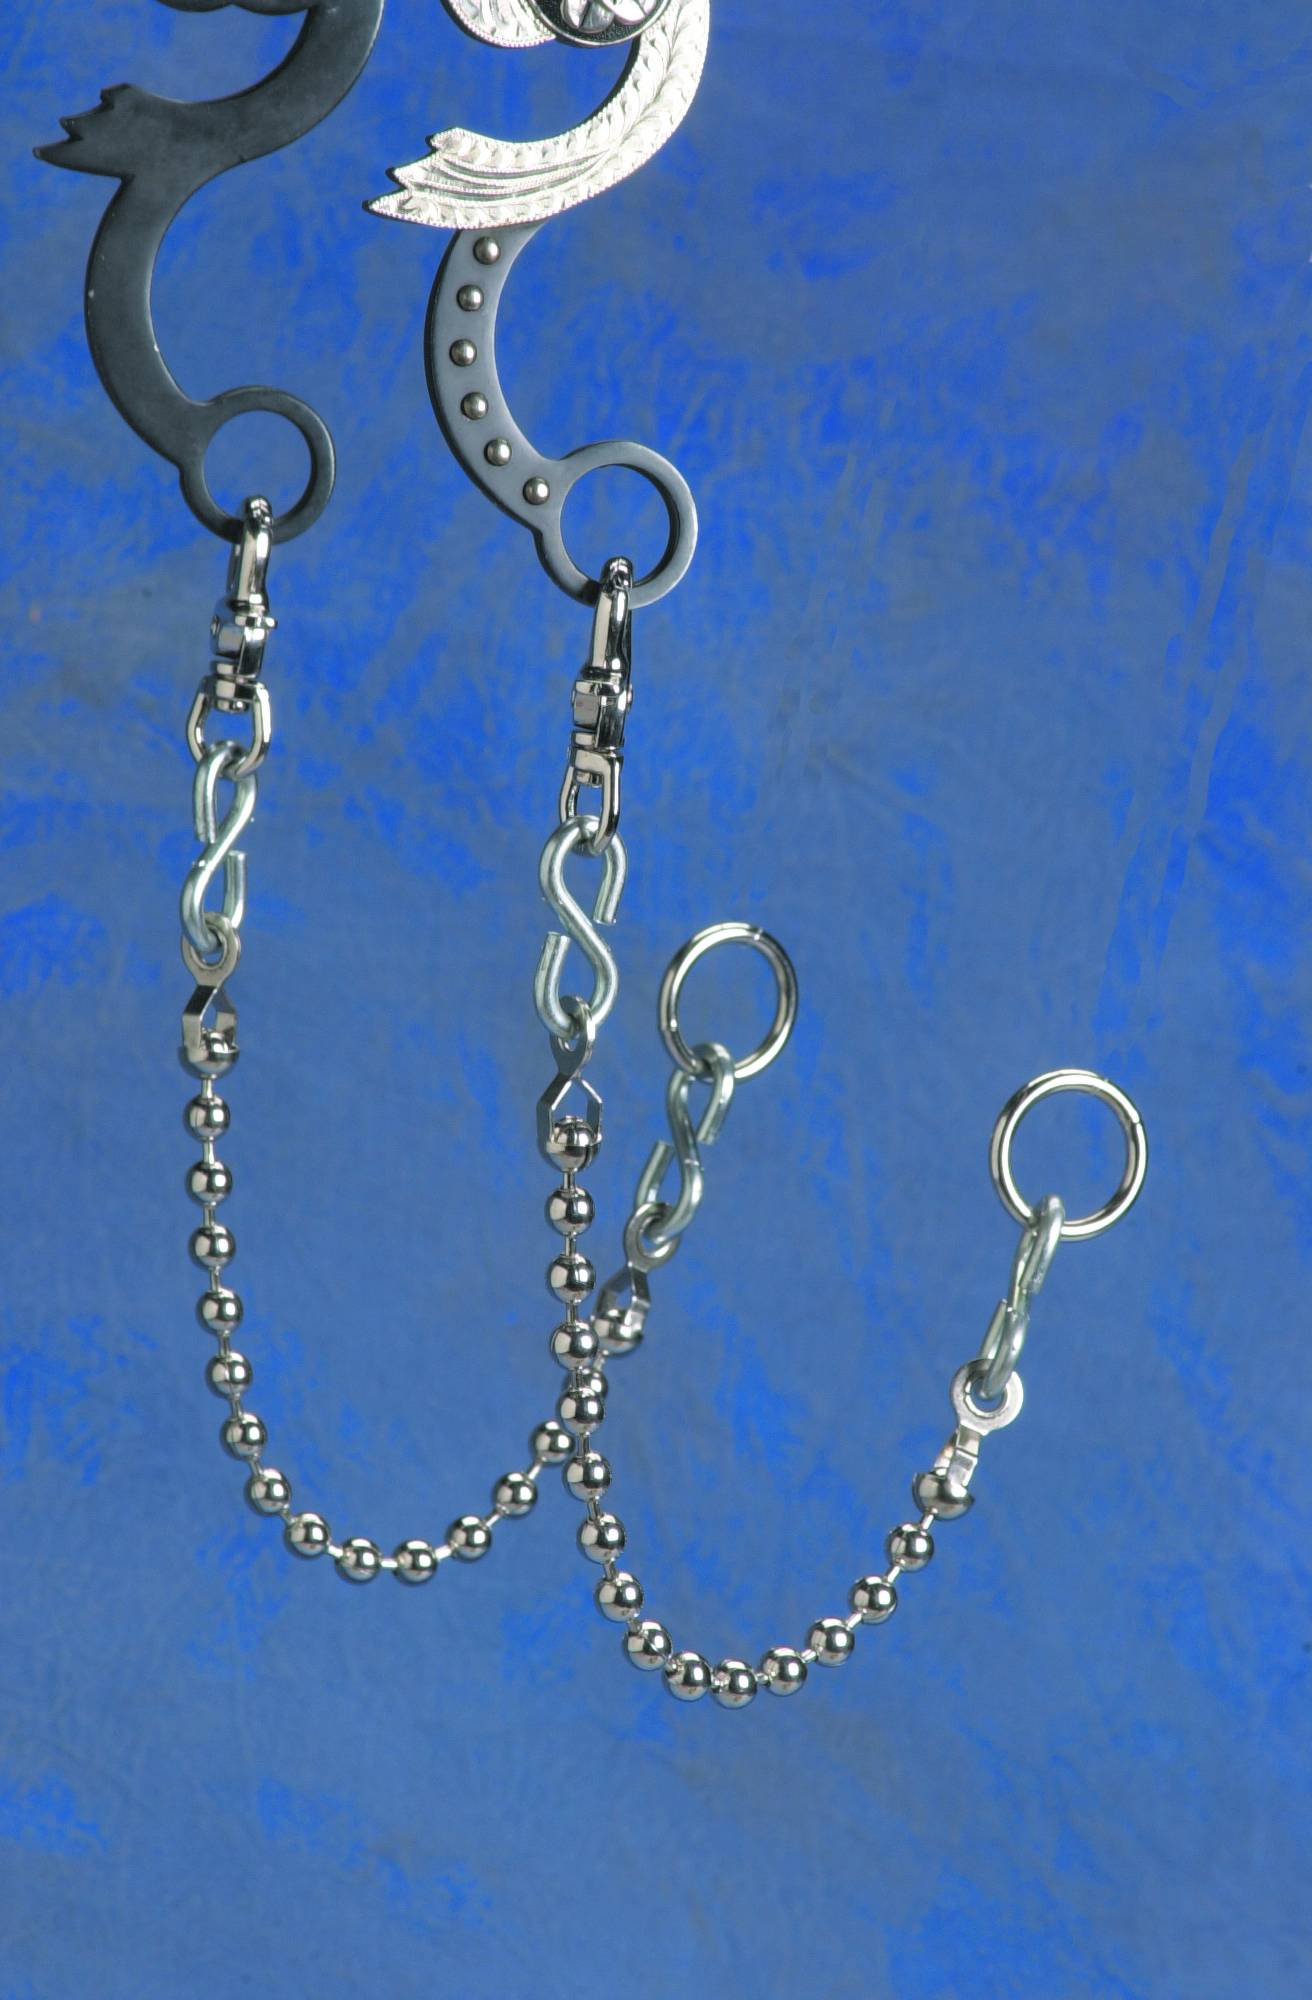 Colorado Saddlery Ball Reins Chains